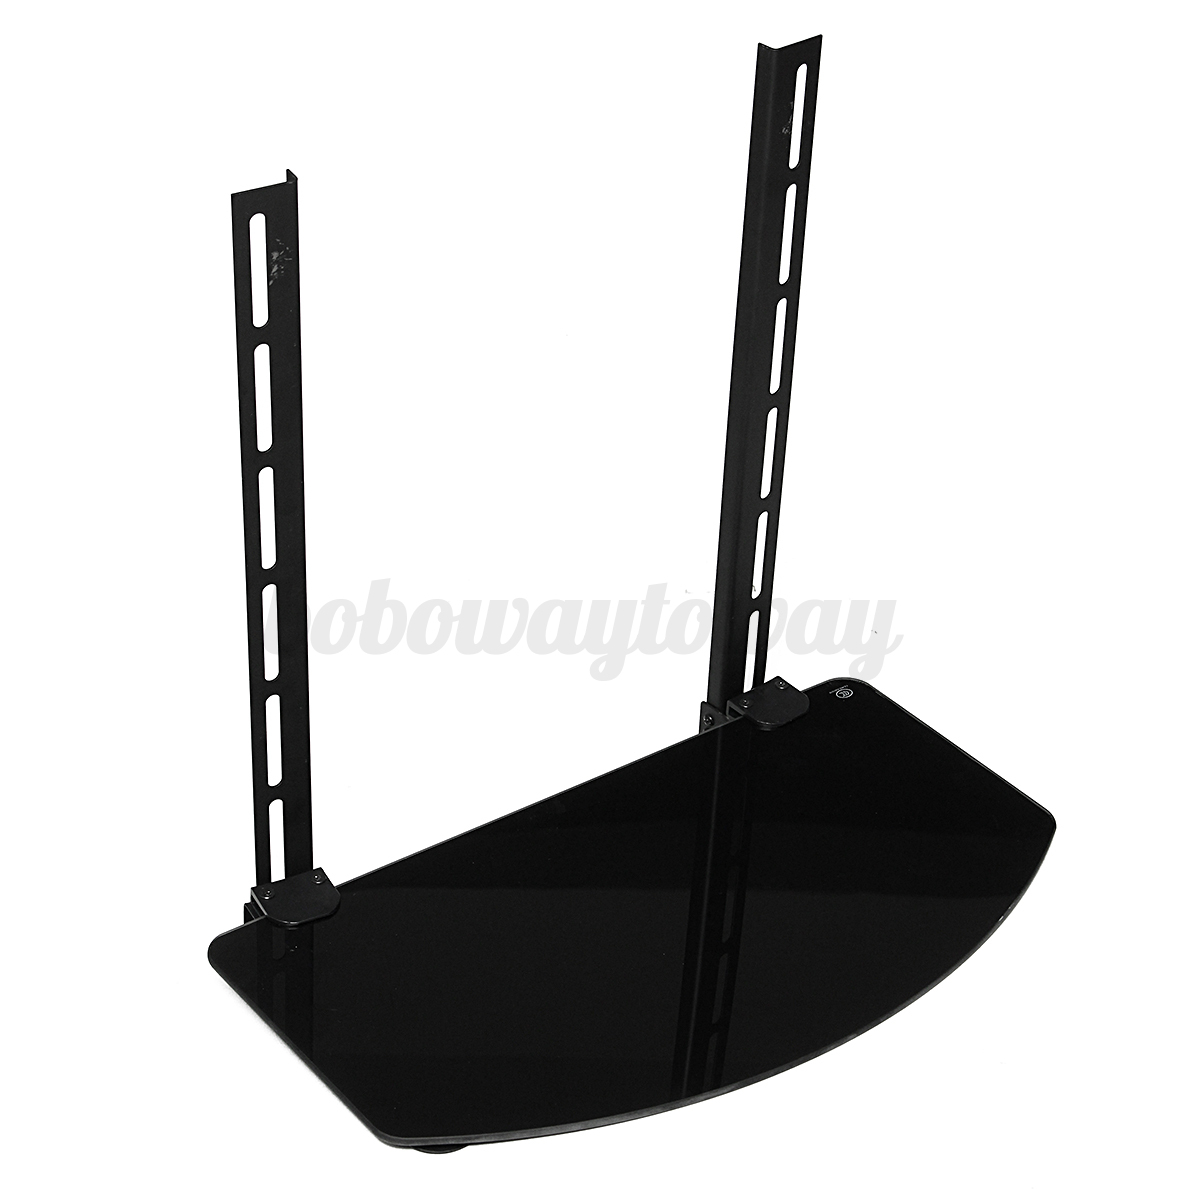 Réglable TV BOX DVD Hifi Routeur WIFI Support Mural Inclinable Pour